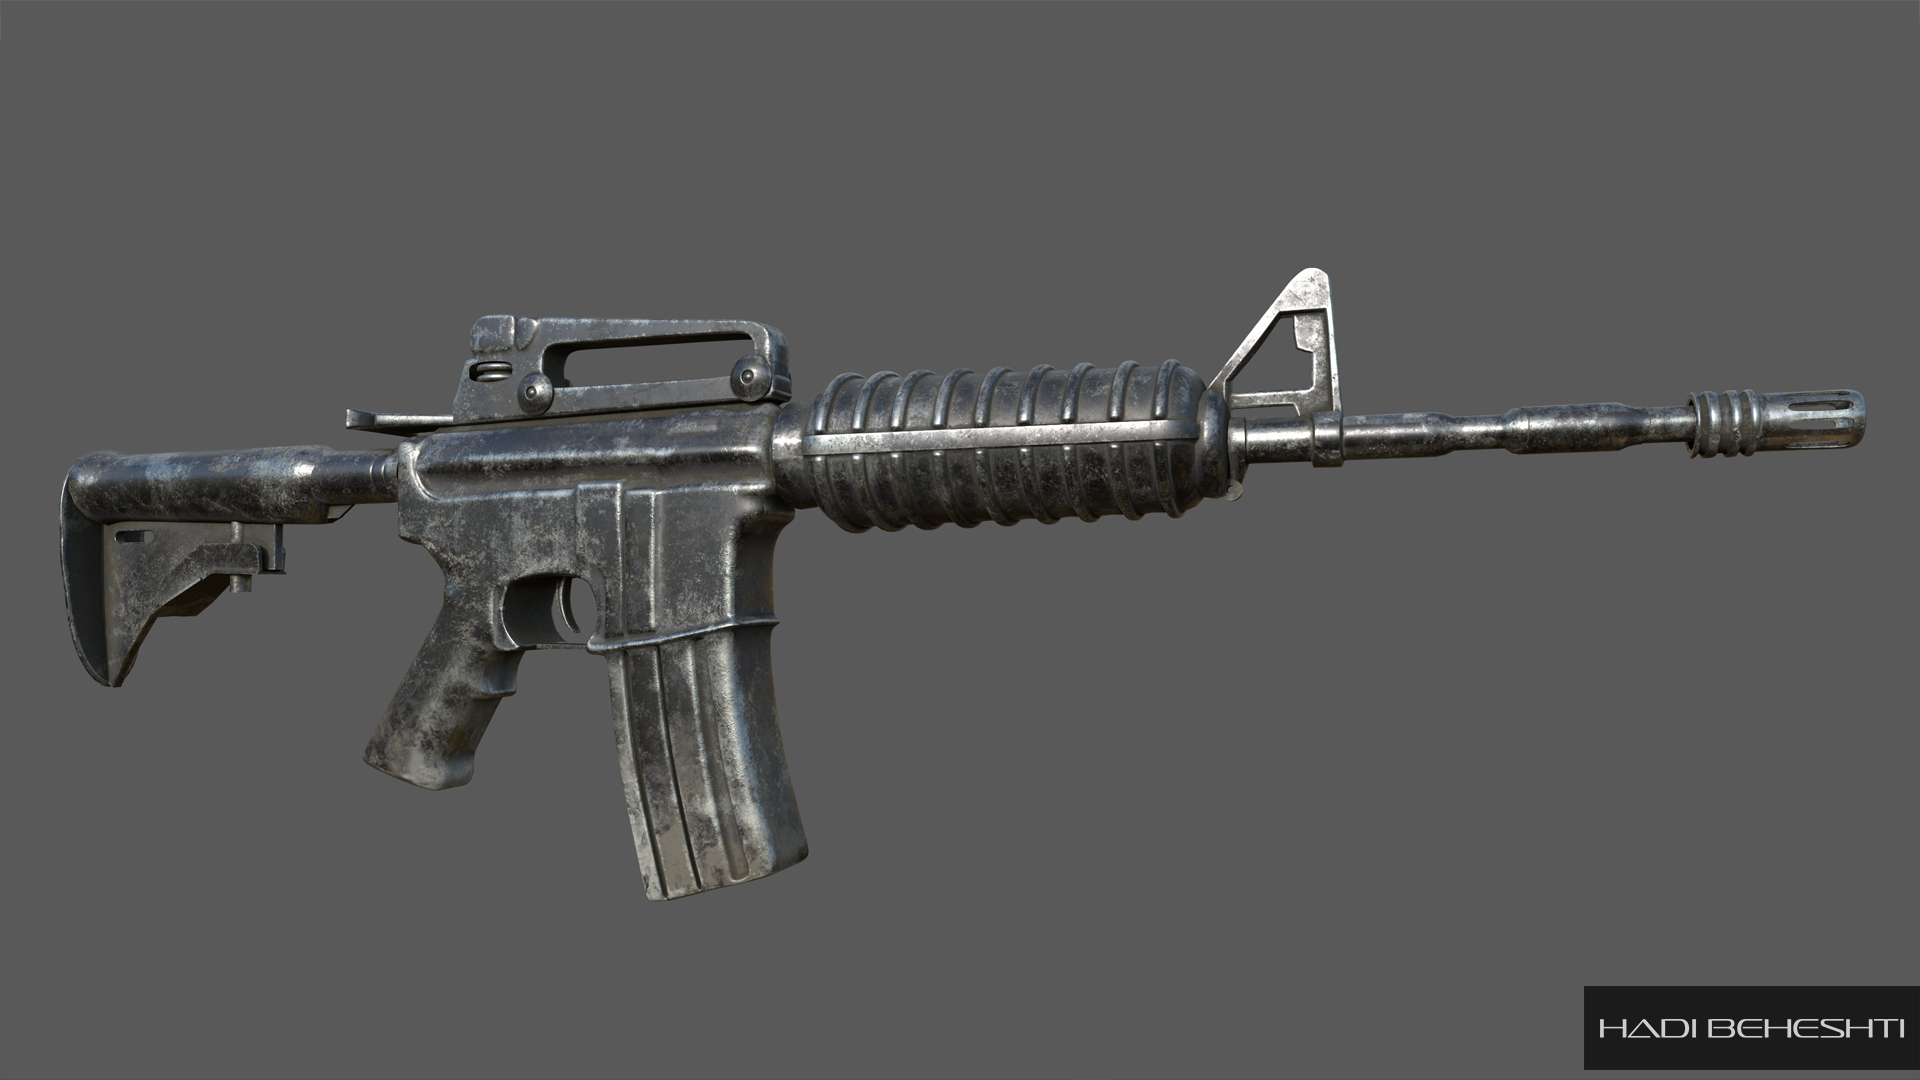 M4A1 Carbine_Modeling and Texturing by Hadi Beheshti-CG Artist-1